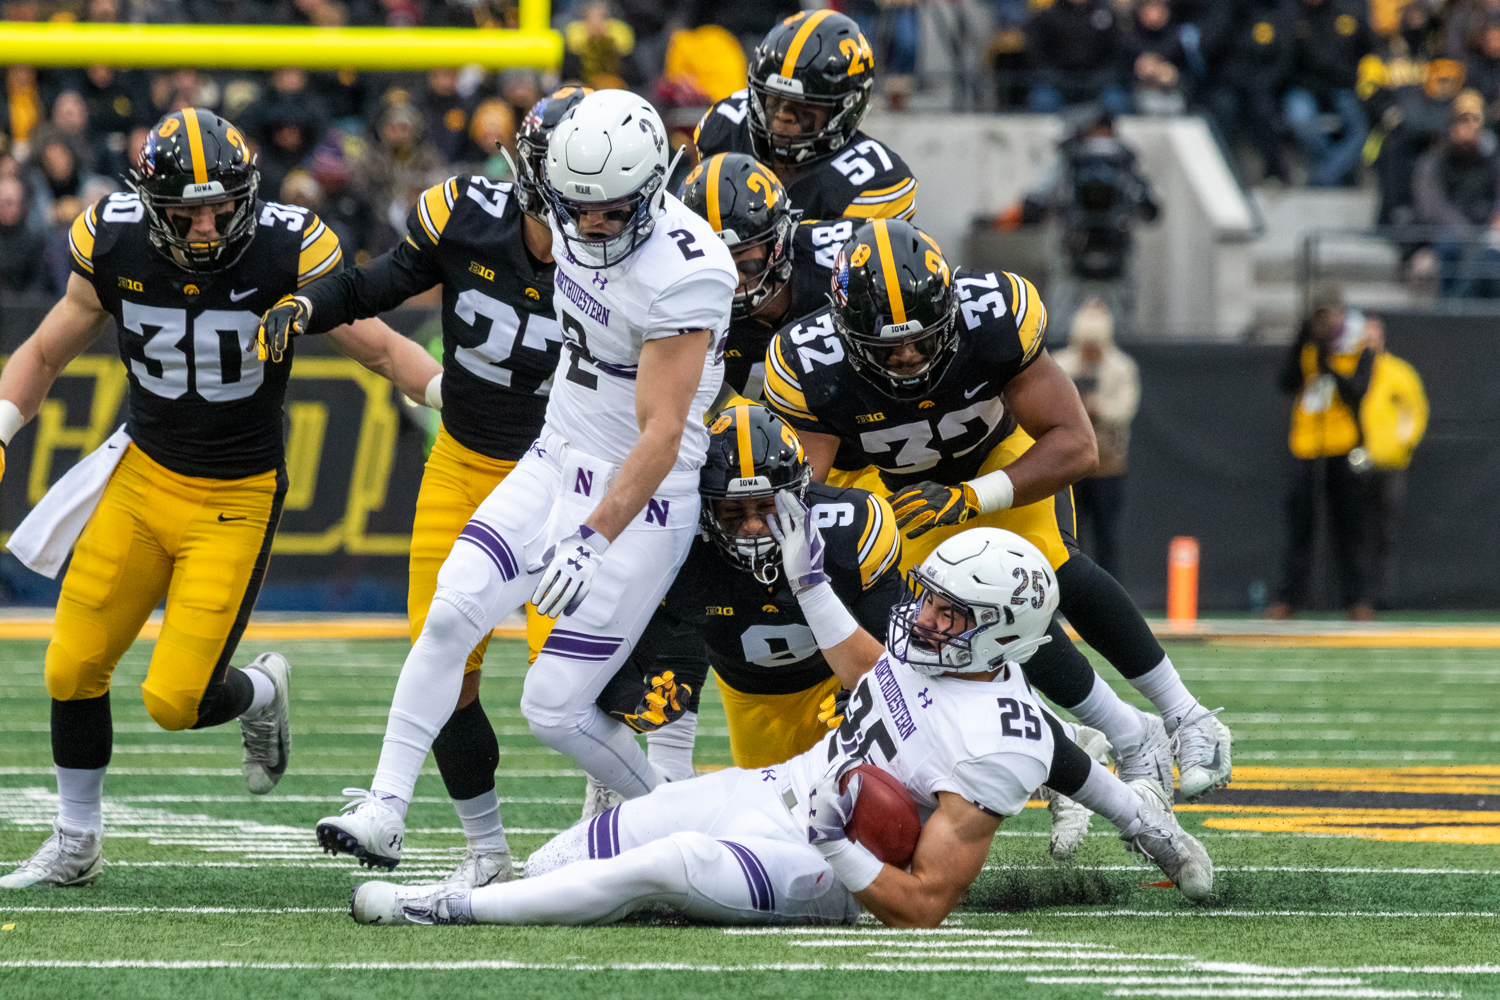 The+Iowa+defense+swarms+to+Northwestern+running+back+Isaiah+Bowser+%2325+during+a+game+against+Northwestern+University+on+Saturday%2C+Nov.+10%2C+2018+at+Kinnick+Stadium+in+Iowa+City.+The+Wildcats+defeated+the+Hawkeyes+14-10.+%28David+Harmantas%2FThe+Daily+Iowan%29